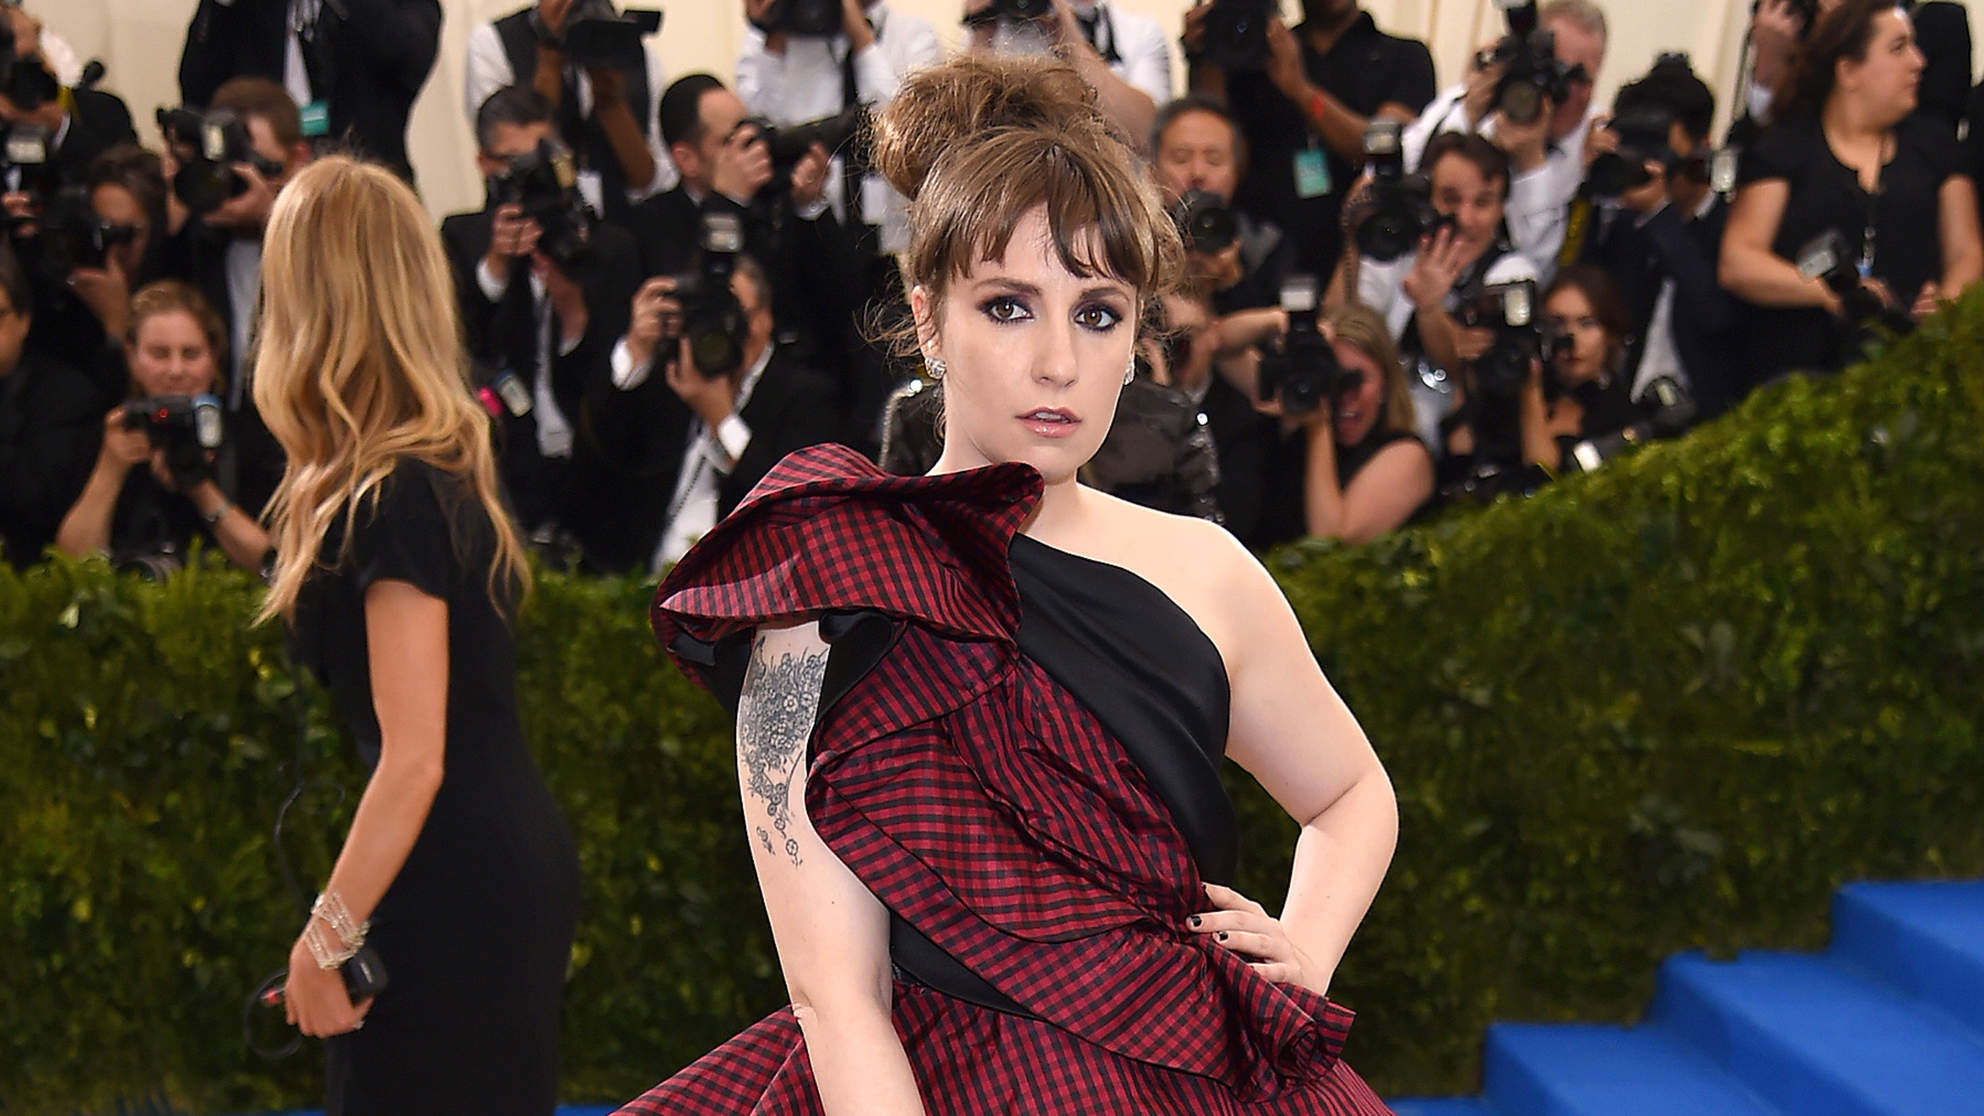 Lena Dunham Rushed to Hospital After Met Gala for Endometriosis Complications, Source Says